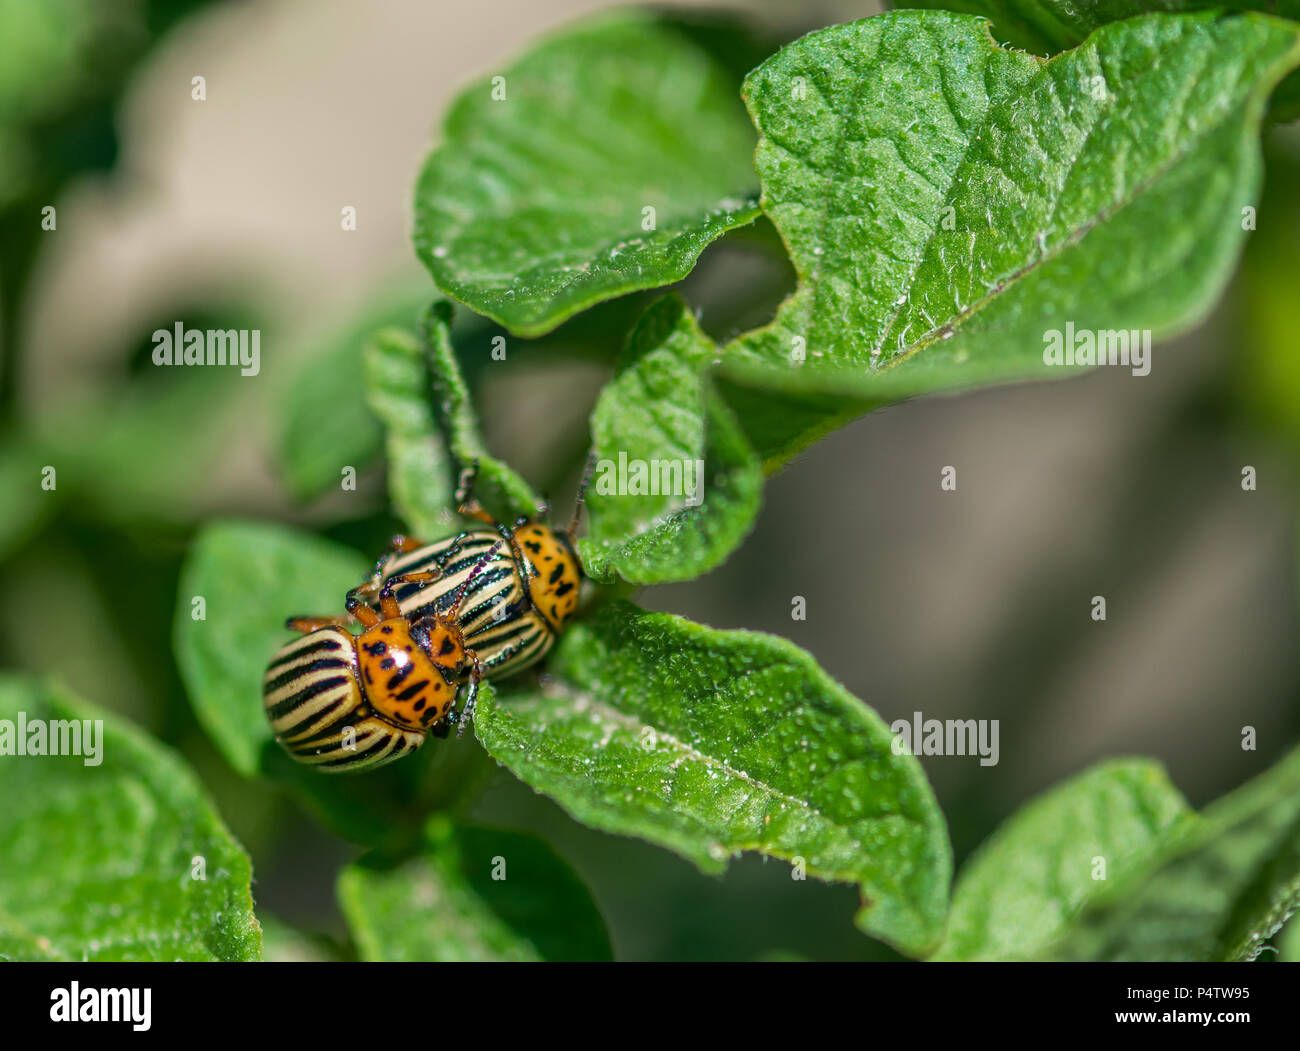 Doryphoroos Reproucing on Leafs, City of Ste-Anne-des-Plainnes, Quebec, Canada Stock Photo